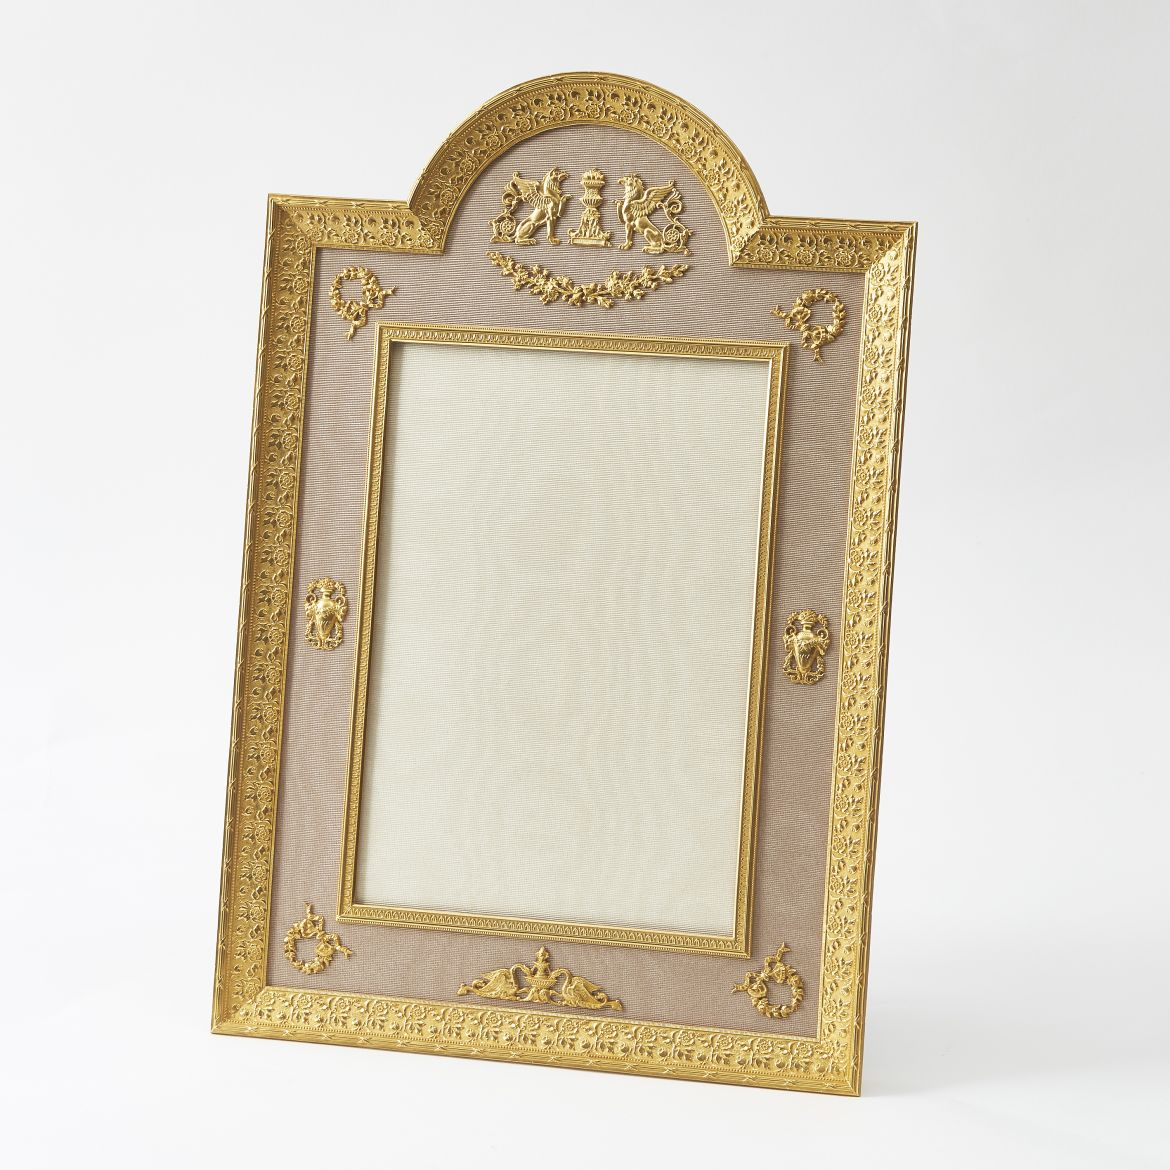 Arch Top Gilt Bronze Frame With Applied Classical Motifs